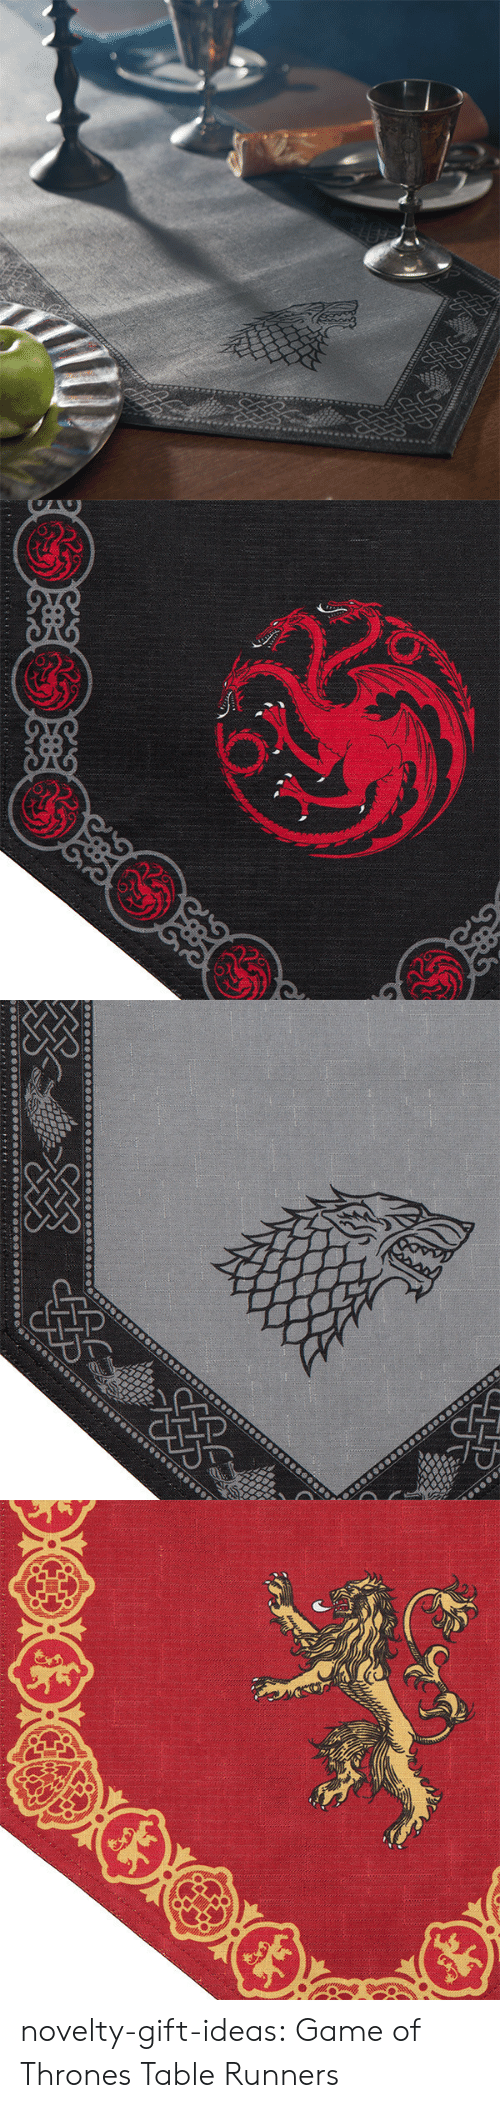 Game of Thrones, Tumblr, and Blog: novelty-gift-ideas:  Game of Thrones Table Runners